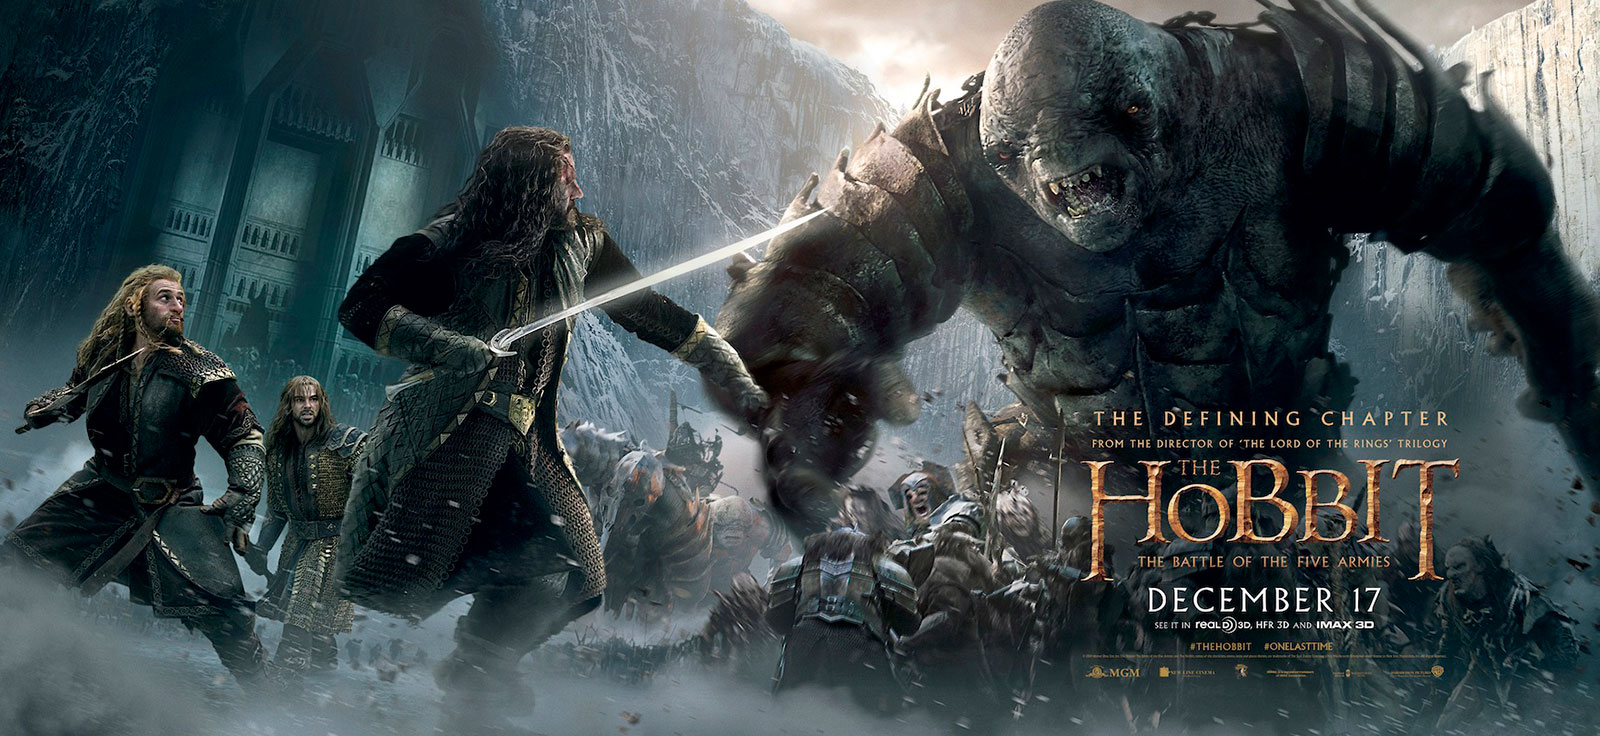 The Hobbit 3 The Battle of the Five Armies 2014 Movie Smaug Desktop 1600x736